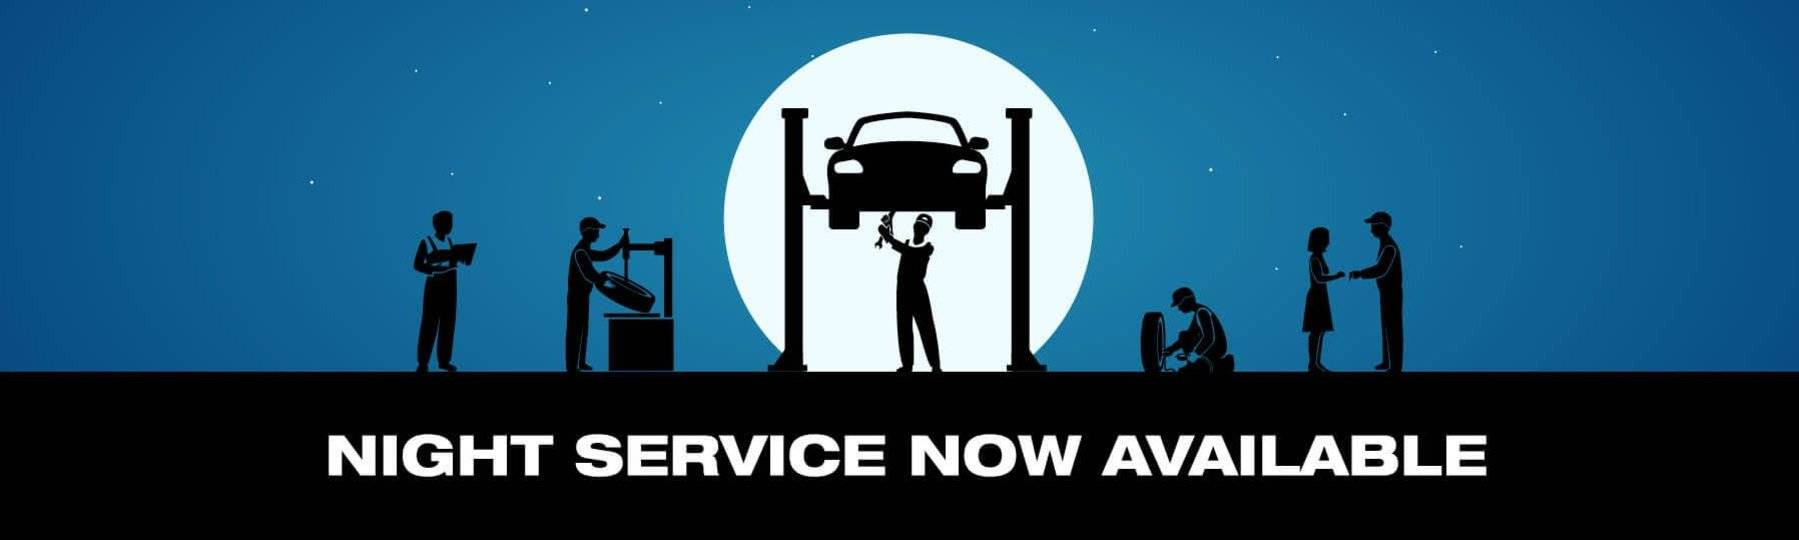 Night Service Now Available